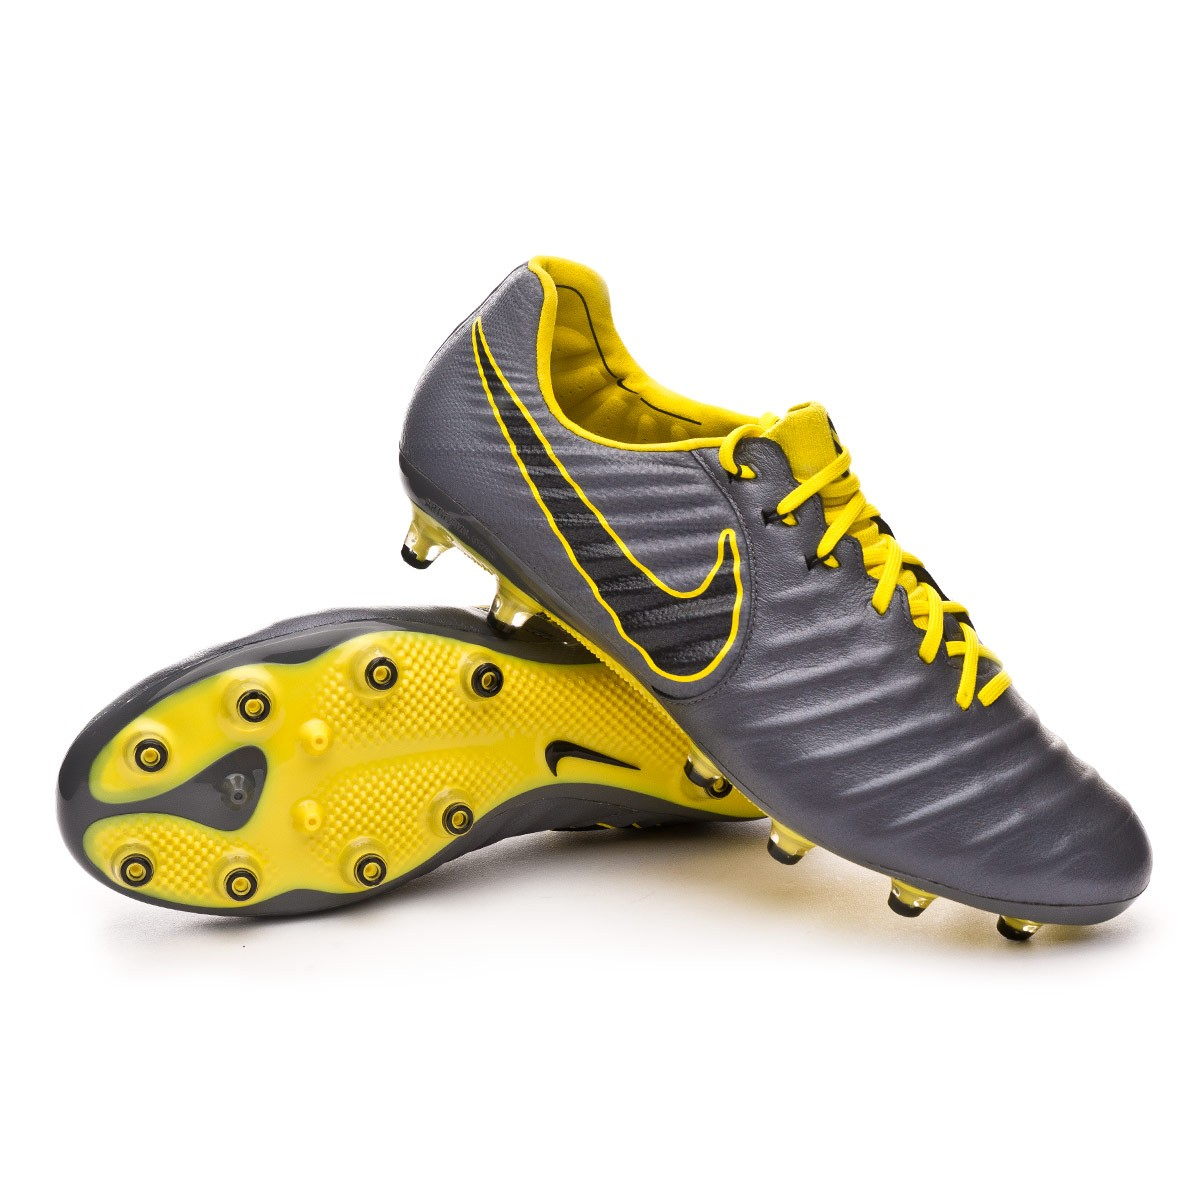 6ed101bc39d Football Boots Nike Tiempo Legend VII Elite AG-Pro Dark grey-Black-Optical  yellow - Football store Fútbol Emotion